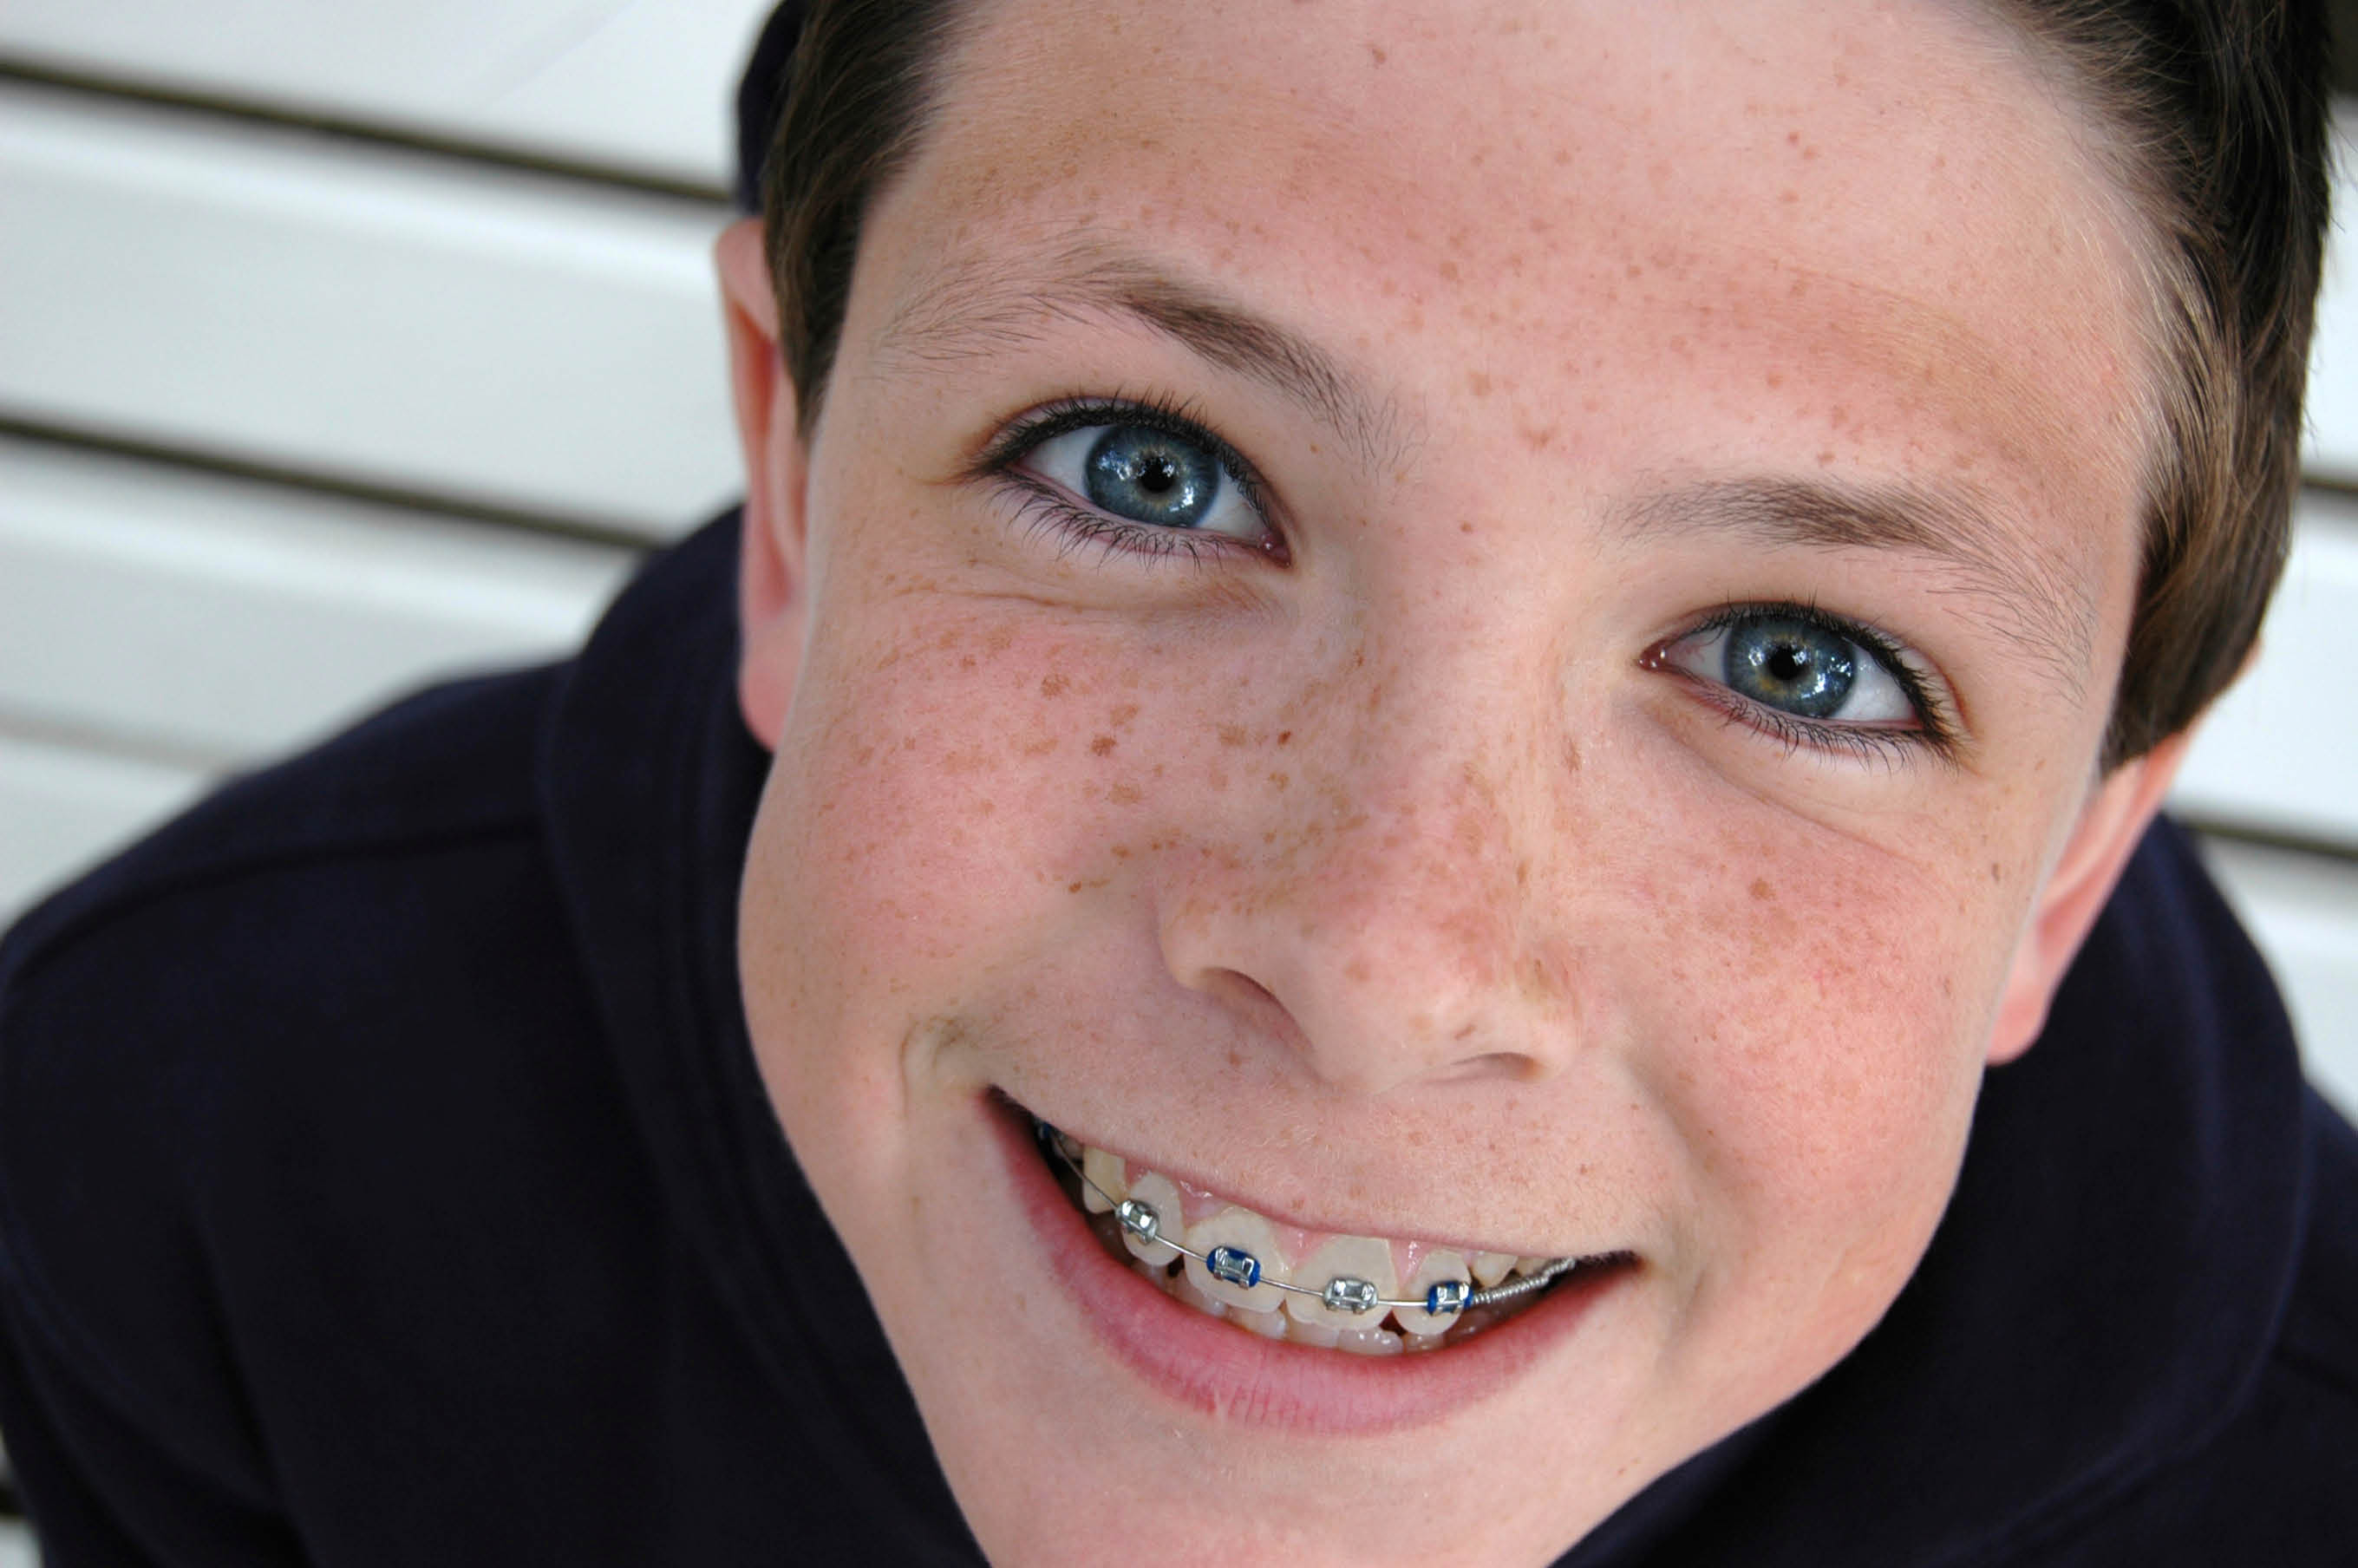 kid with braces